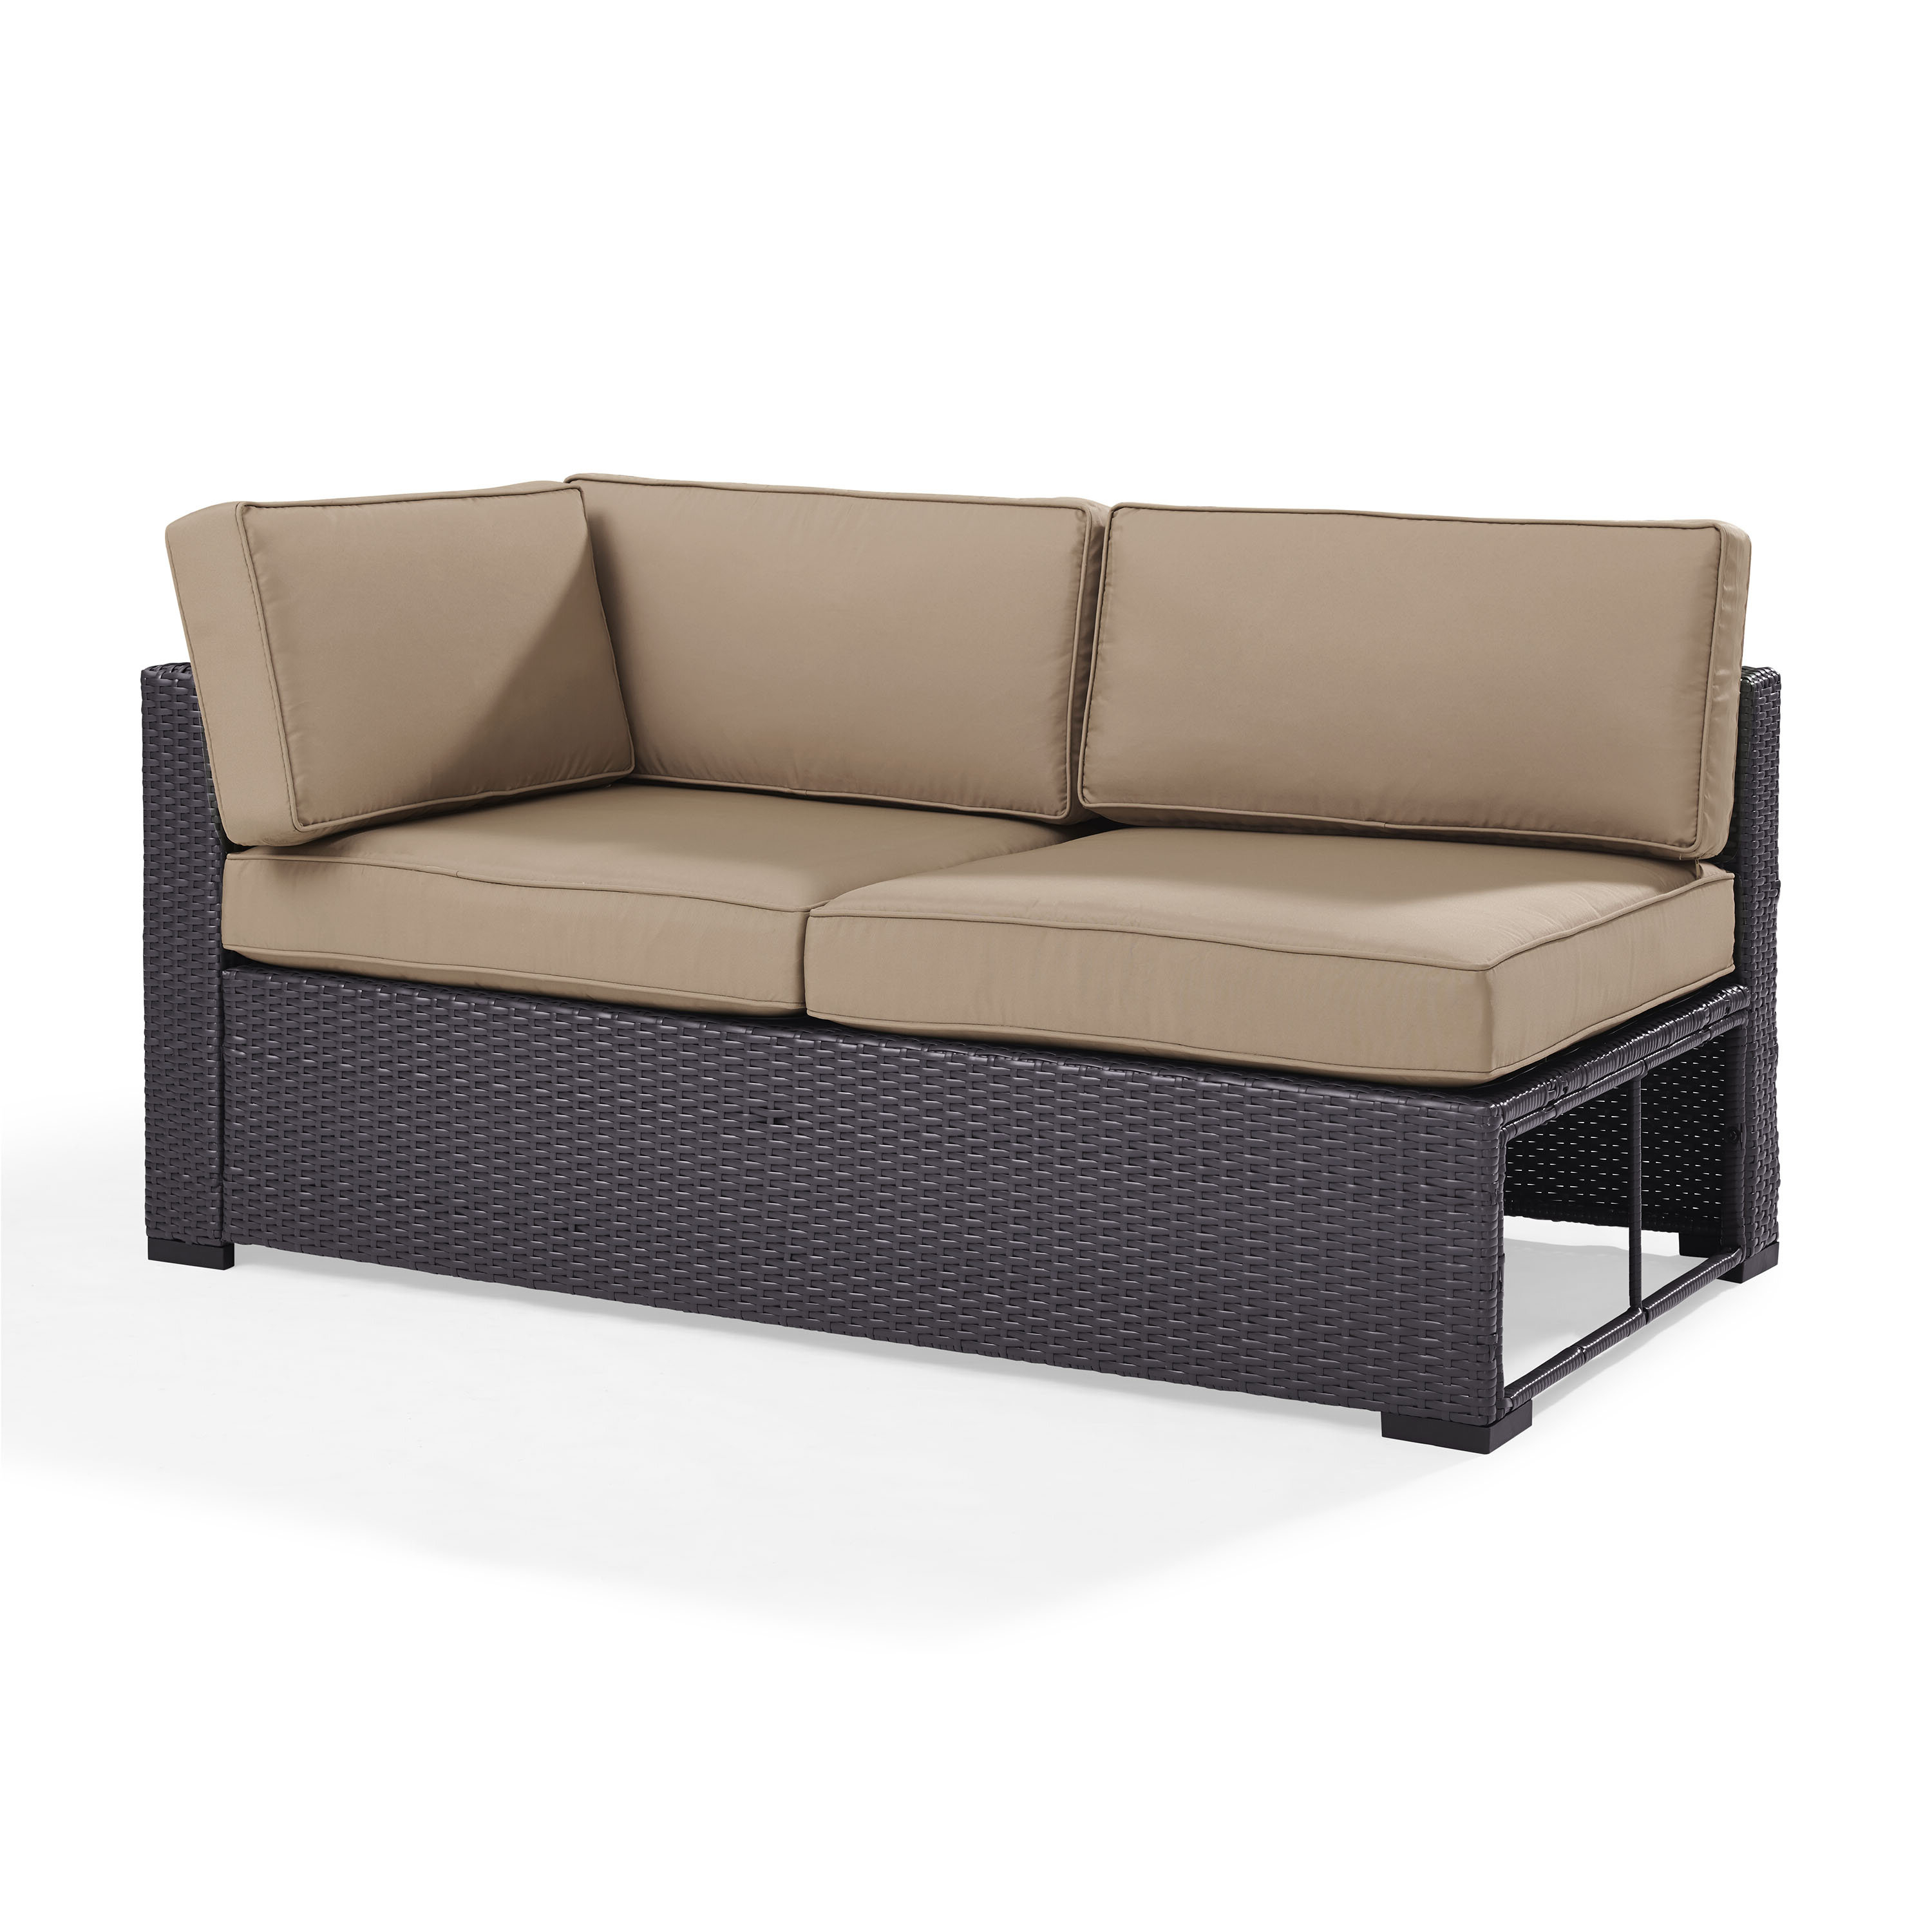 Dinah Loveseat With Cushions Intended For Well Known Mosca Patio Loveseats With Cushions (View 10 of 20)